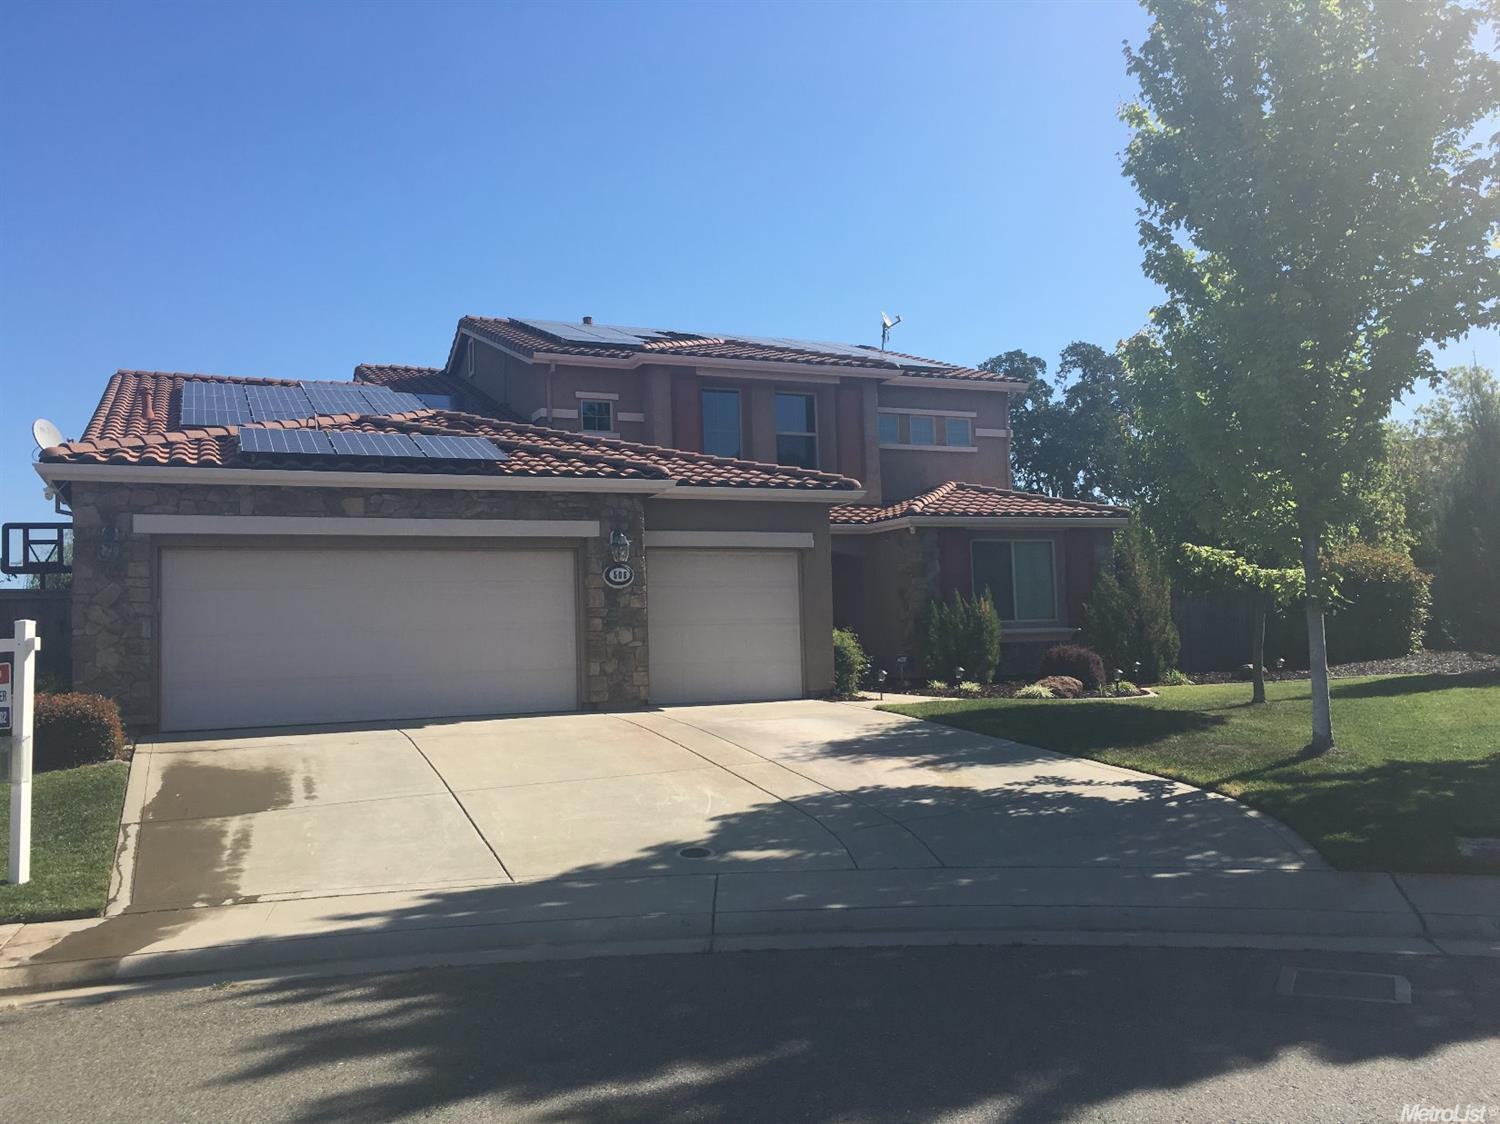 506 Lohse Ct, Lincoln, CA